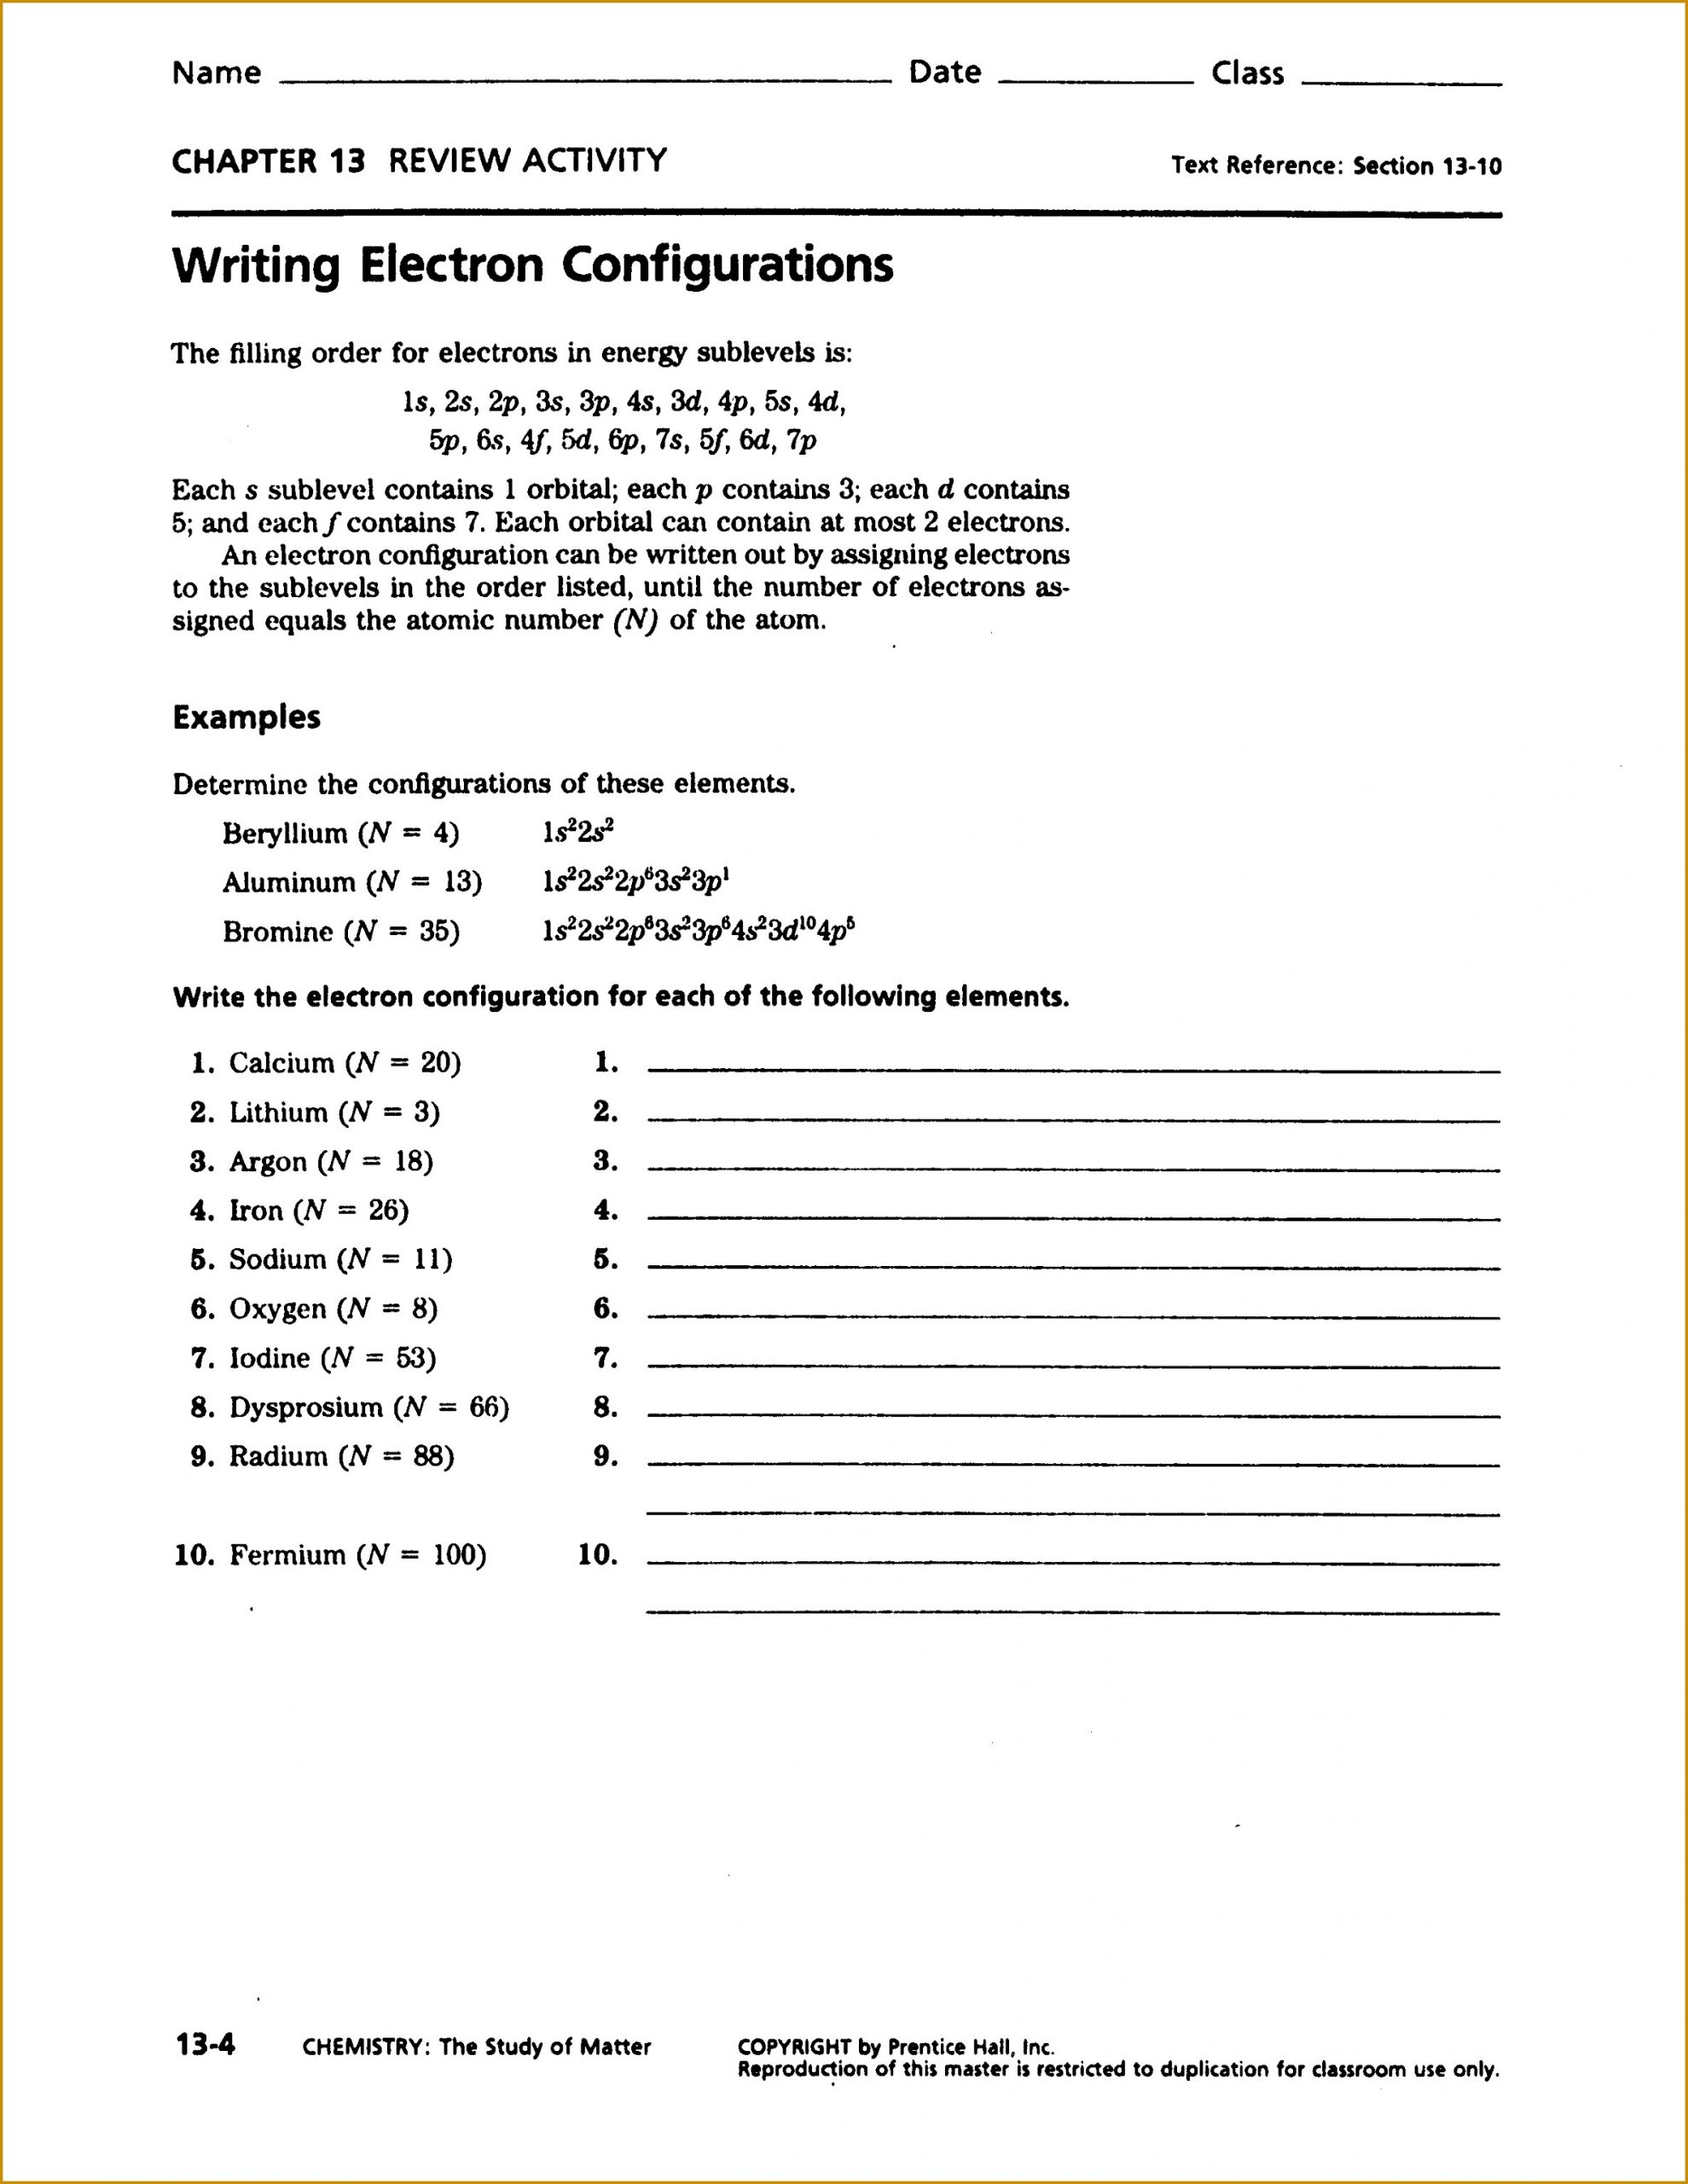 Atomic Structure Worksheet Answers Key Chapter 4 atomic Structure Worksheet Answers